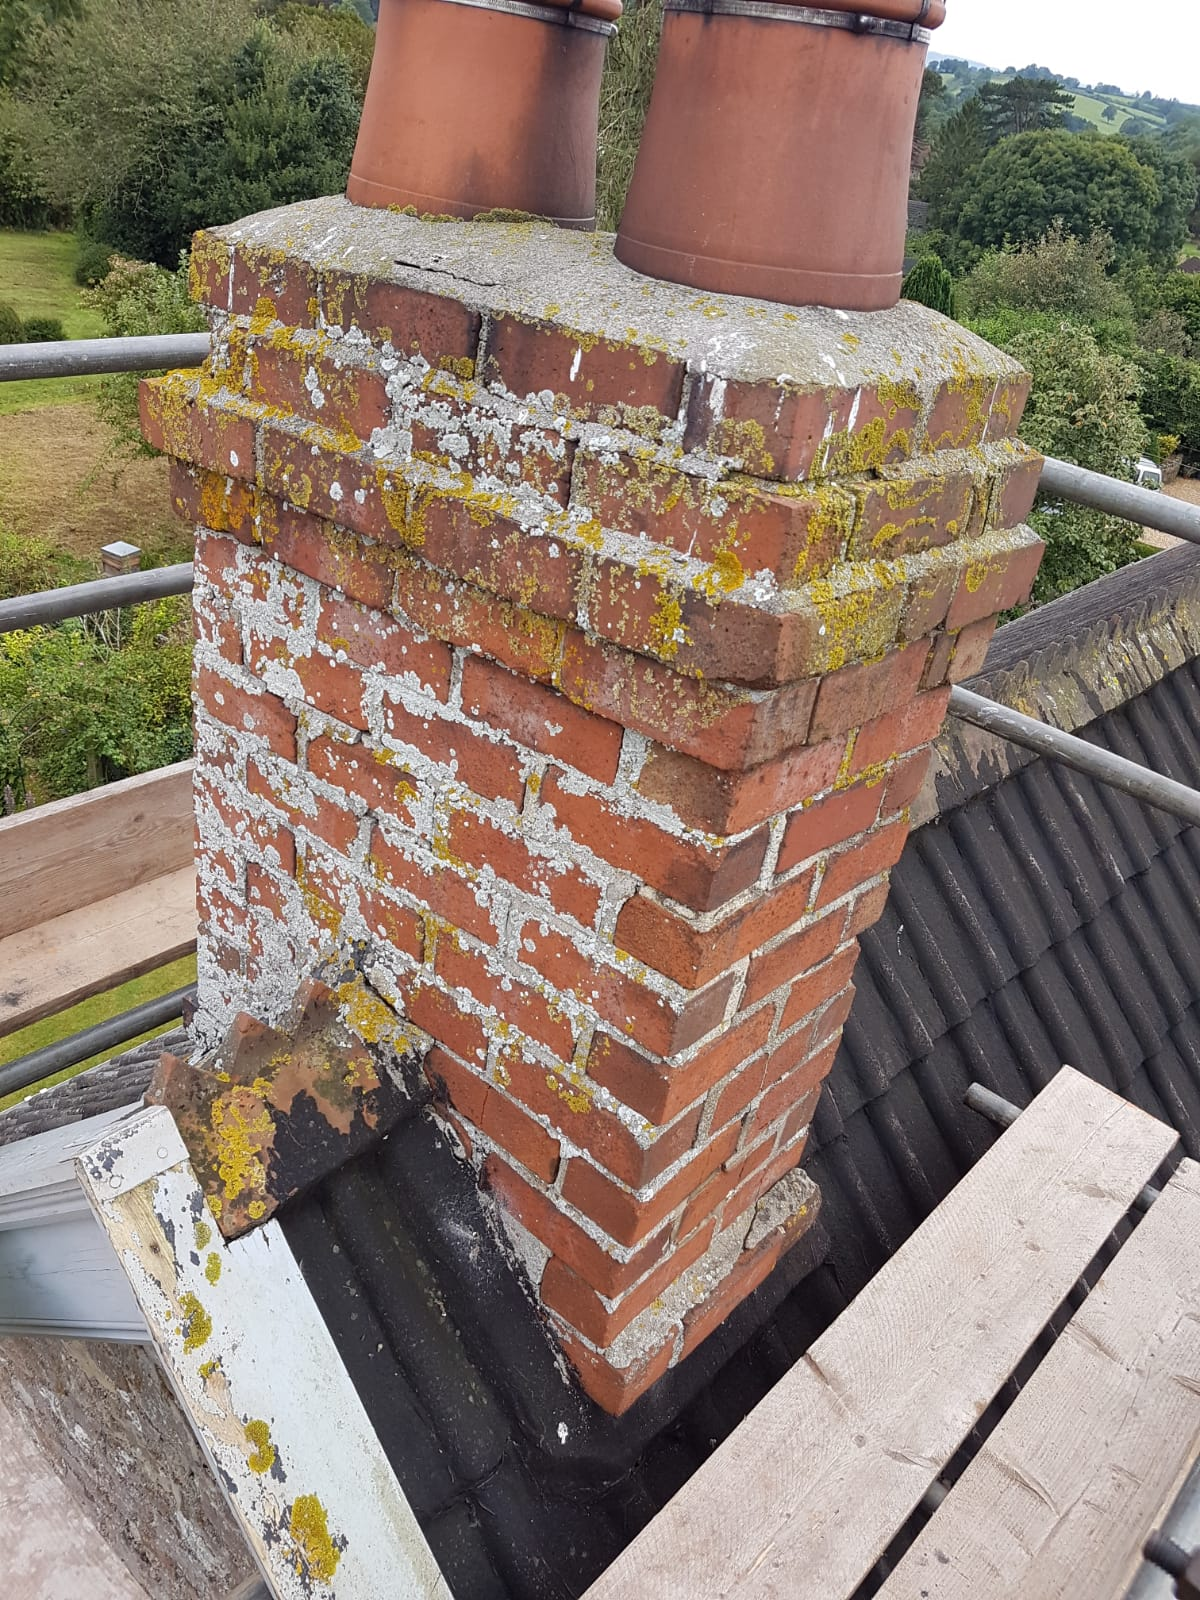 This chimney was in need of some TLC